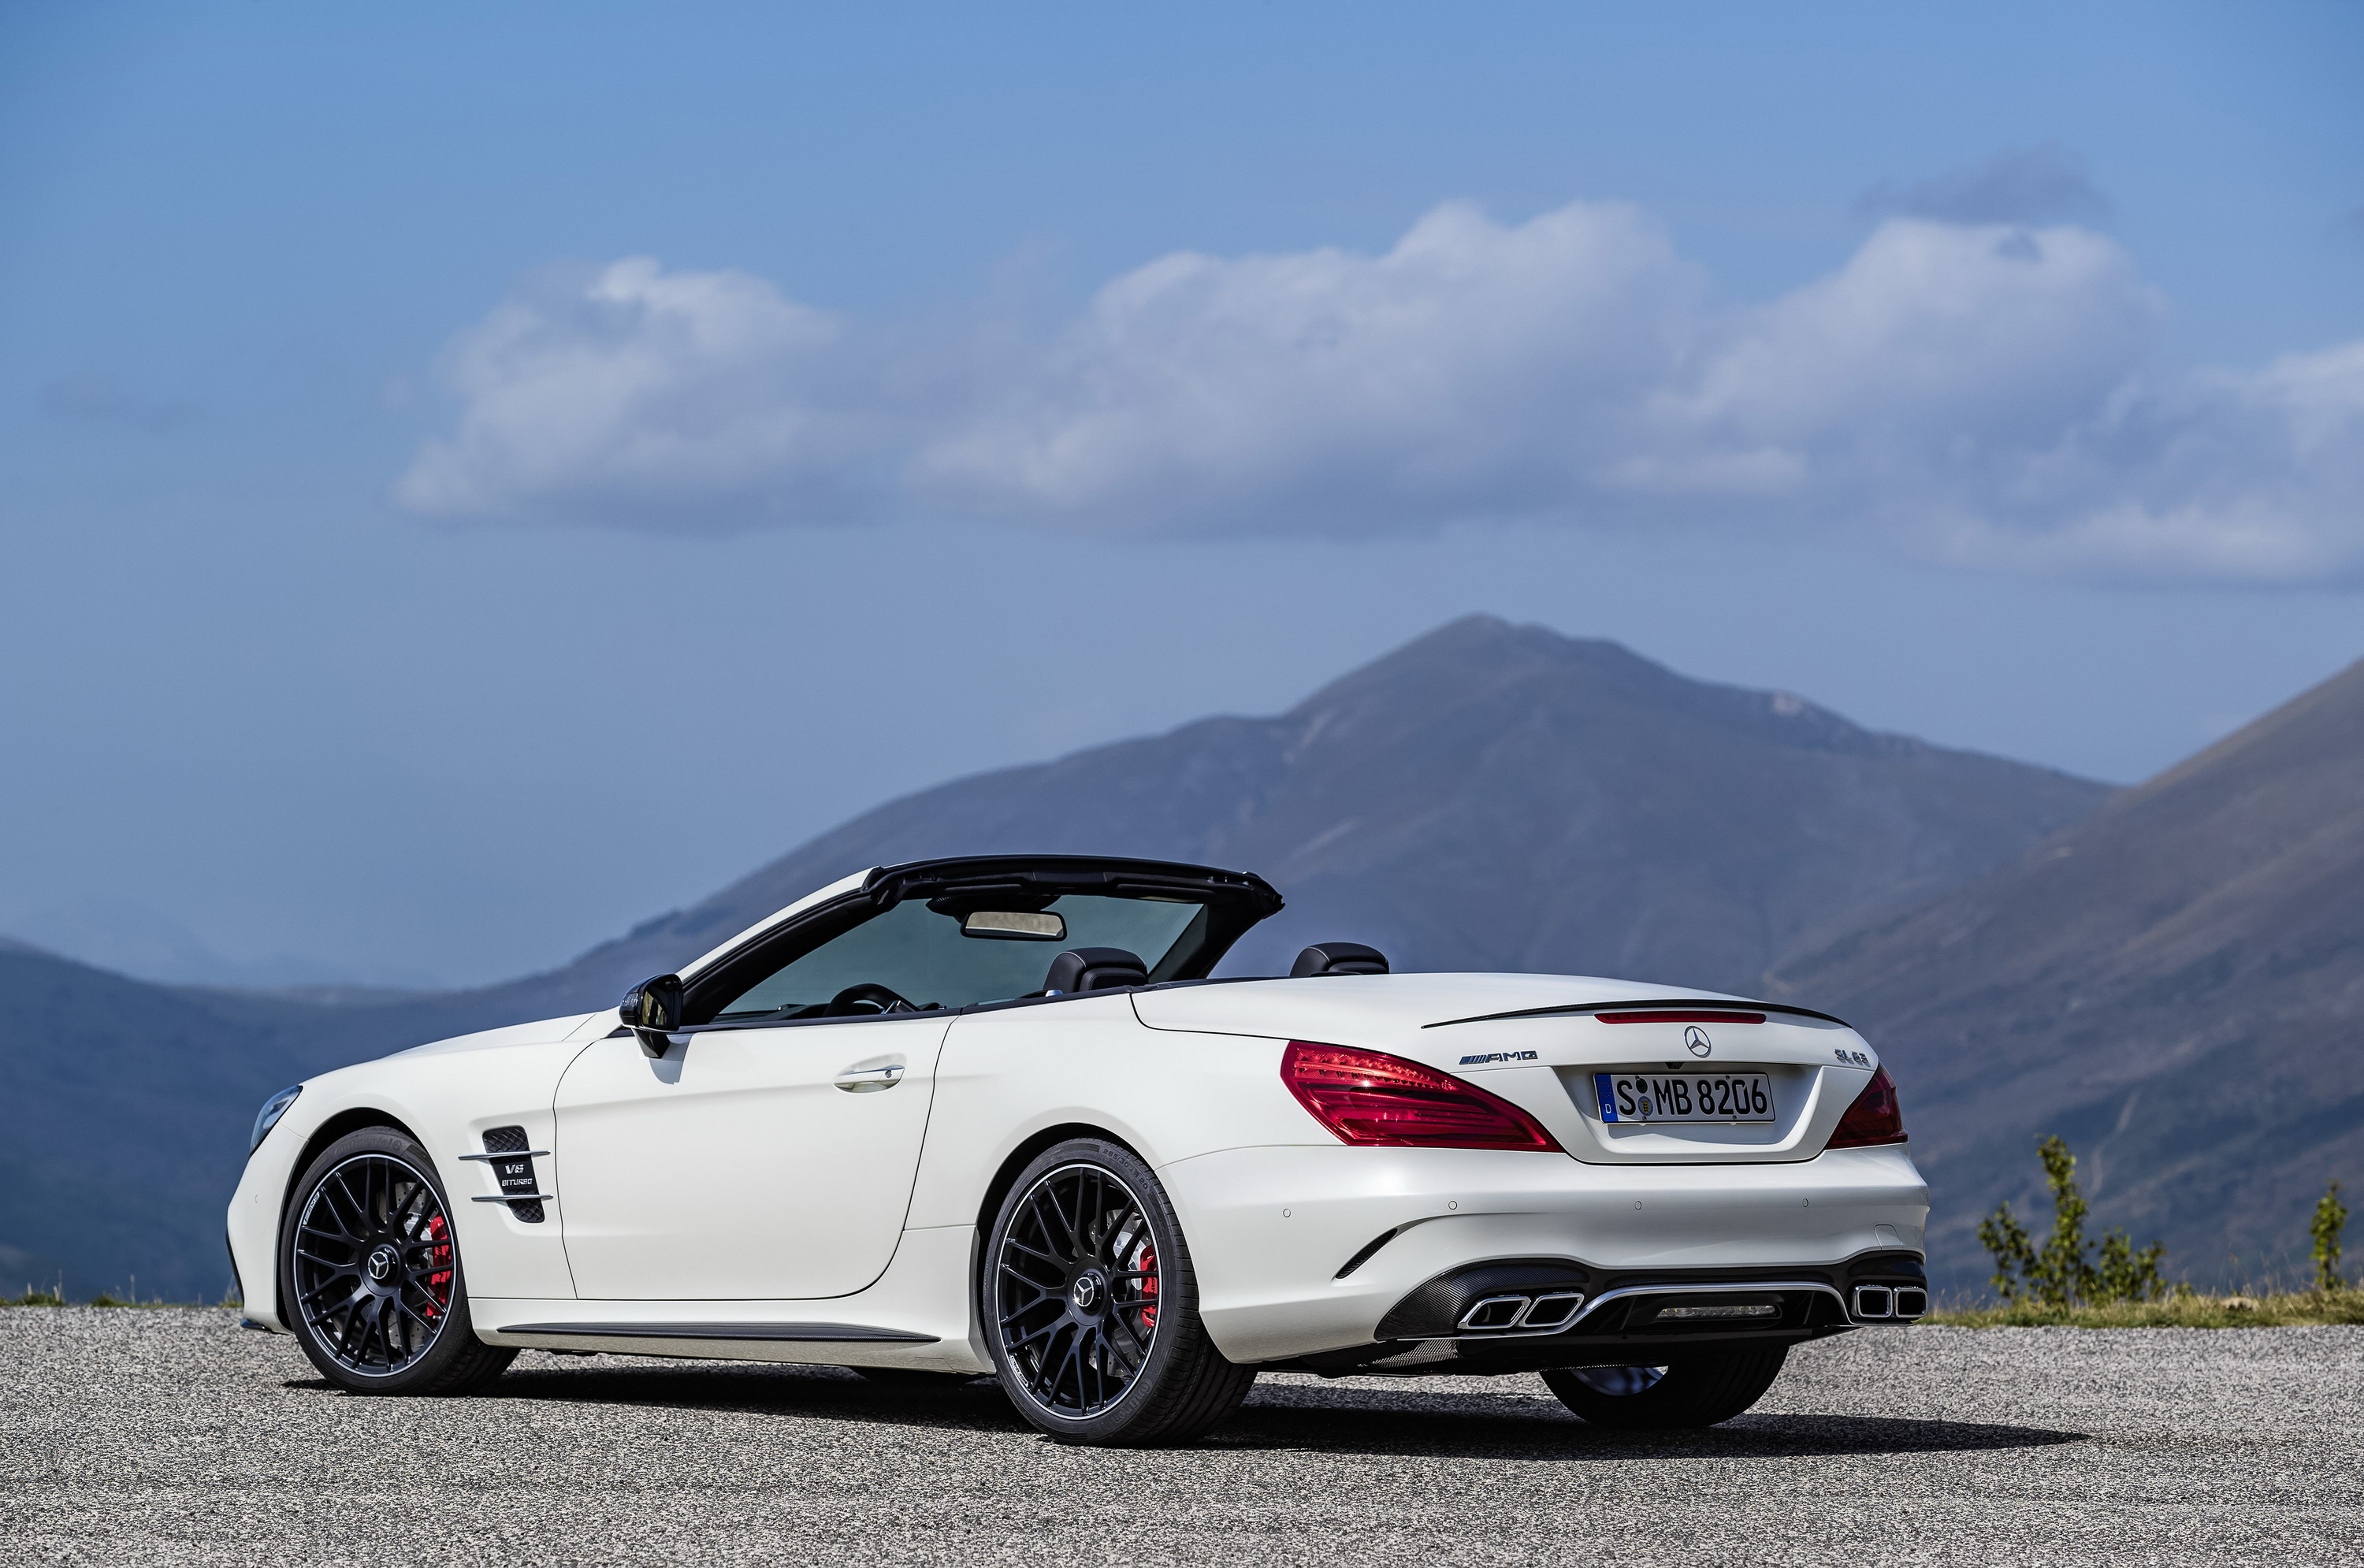 Mercedes-Benz SL-klasse AMG III (R231) Restyling 2015 - now Roadster #4